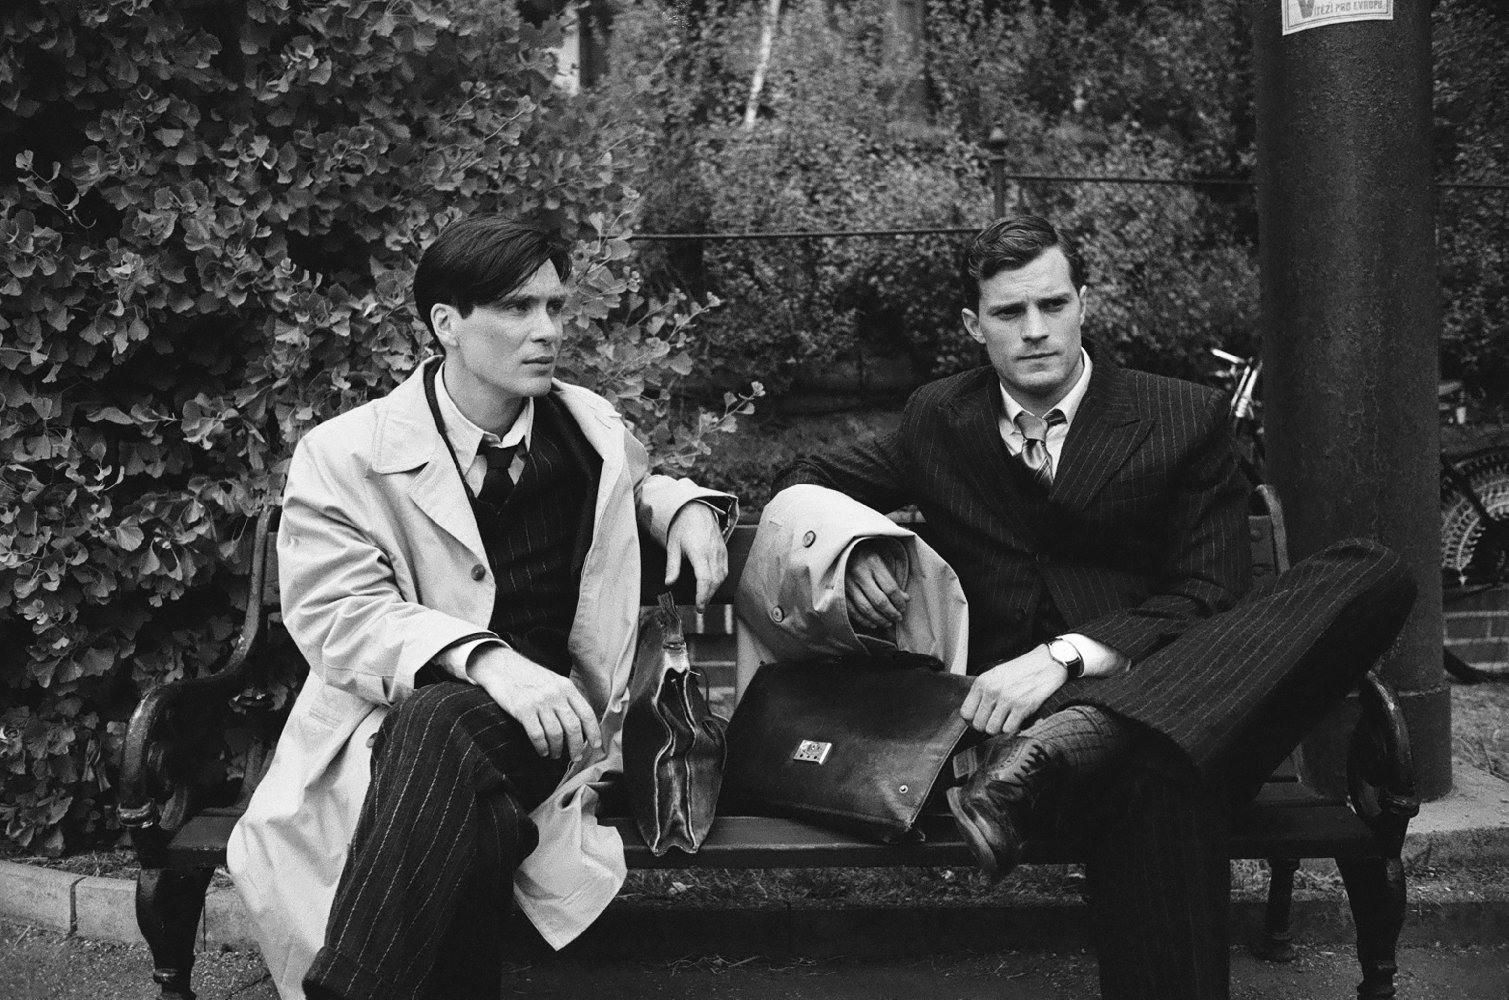 CILLIAN MURPHY, ON THE LEFT, AND JAMIE DORNAN, ON THE RIGHT, PLAYED CZECH SOLDIERS JOSEF GABCIK AND JAN KUBIS RESPECTIVELY.